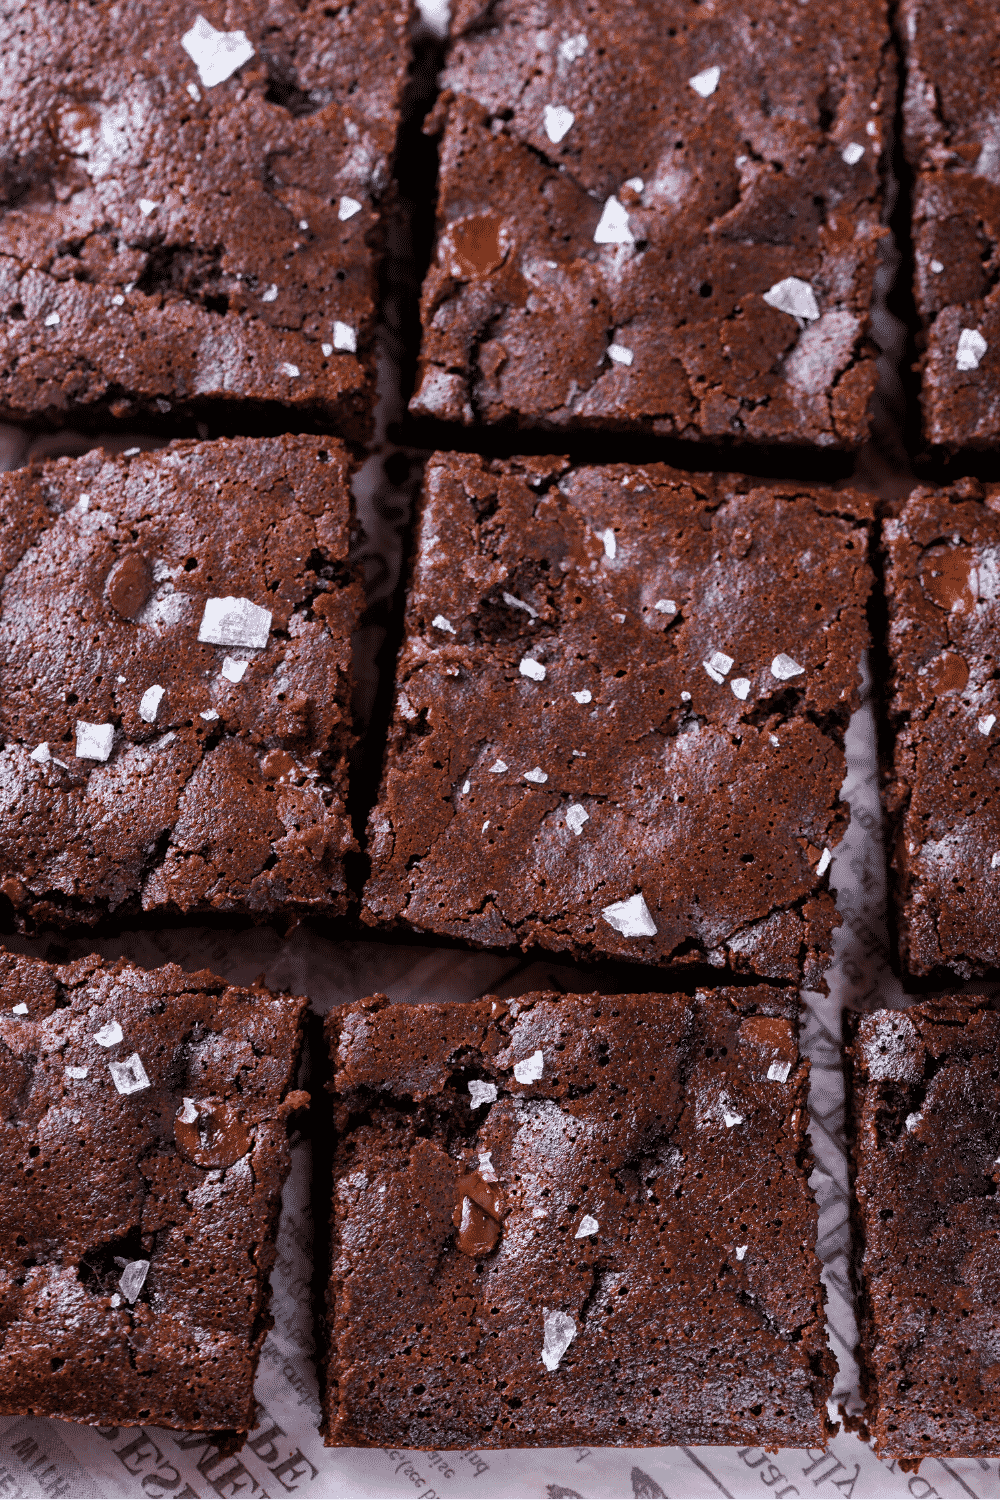 Six brownie squares on a piece of white newspaper.